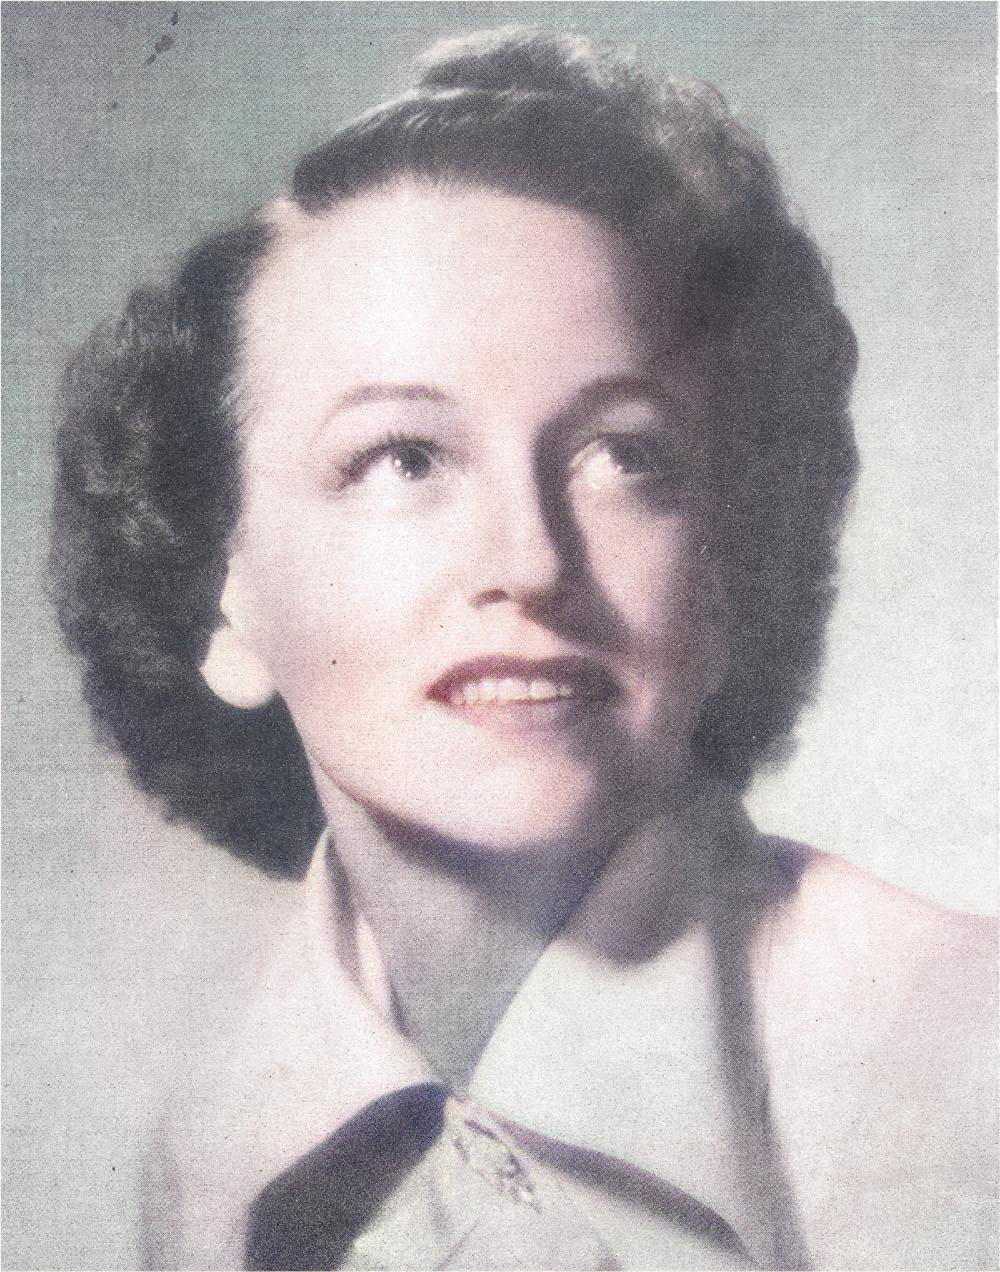 An article in the December 1949 issue of Radio and Television Mirror magazine described Sondergaard as having